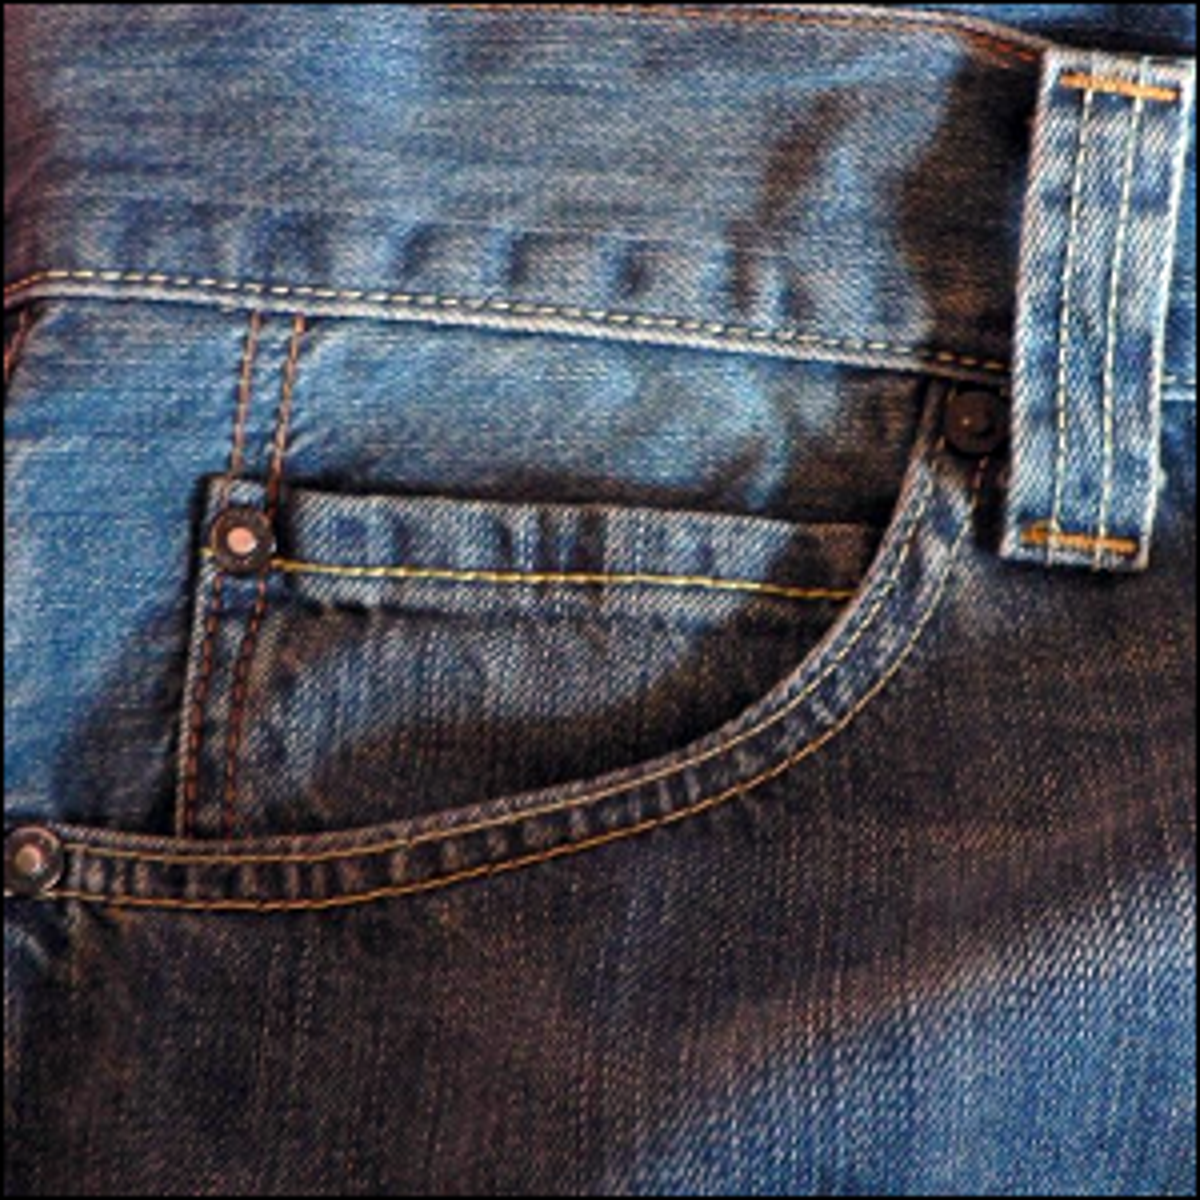 A pair of Levi's 506 jeans with a watch pocket sewn into the front pocket.